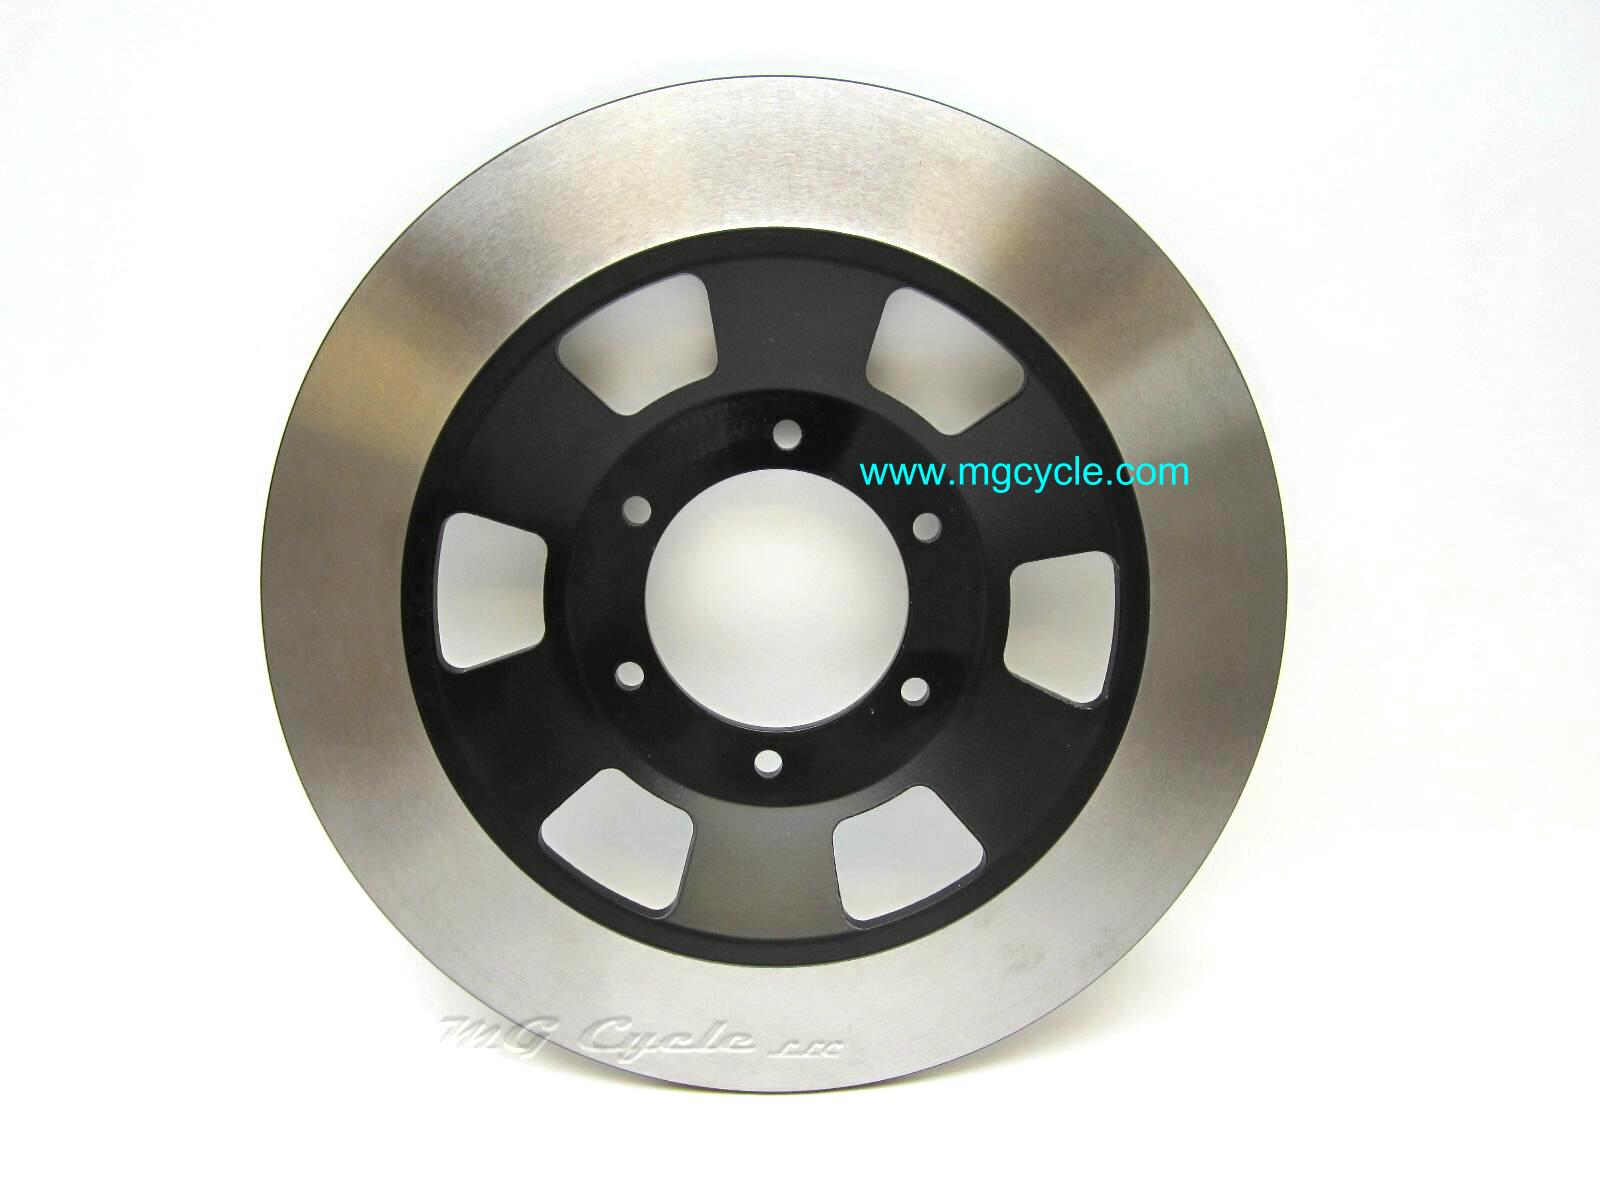 300mm brake disk for Eldorado, V7 Sport, T3, California II, etc